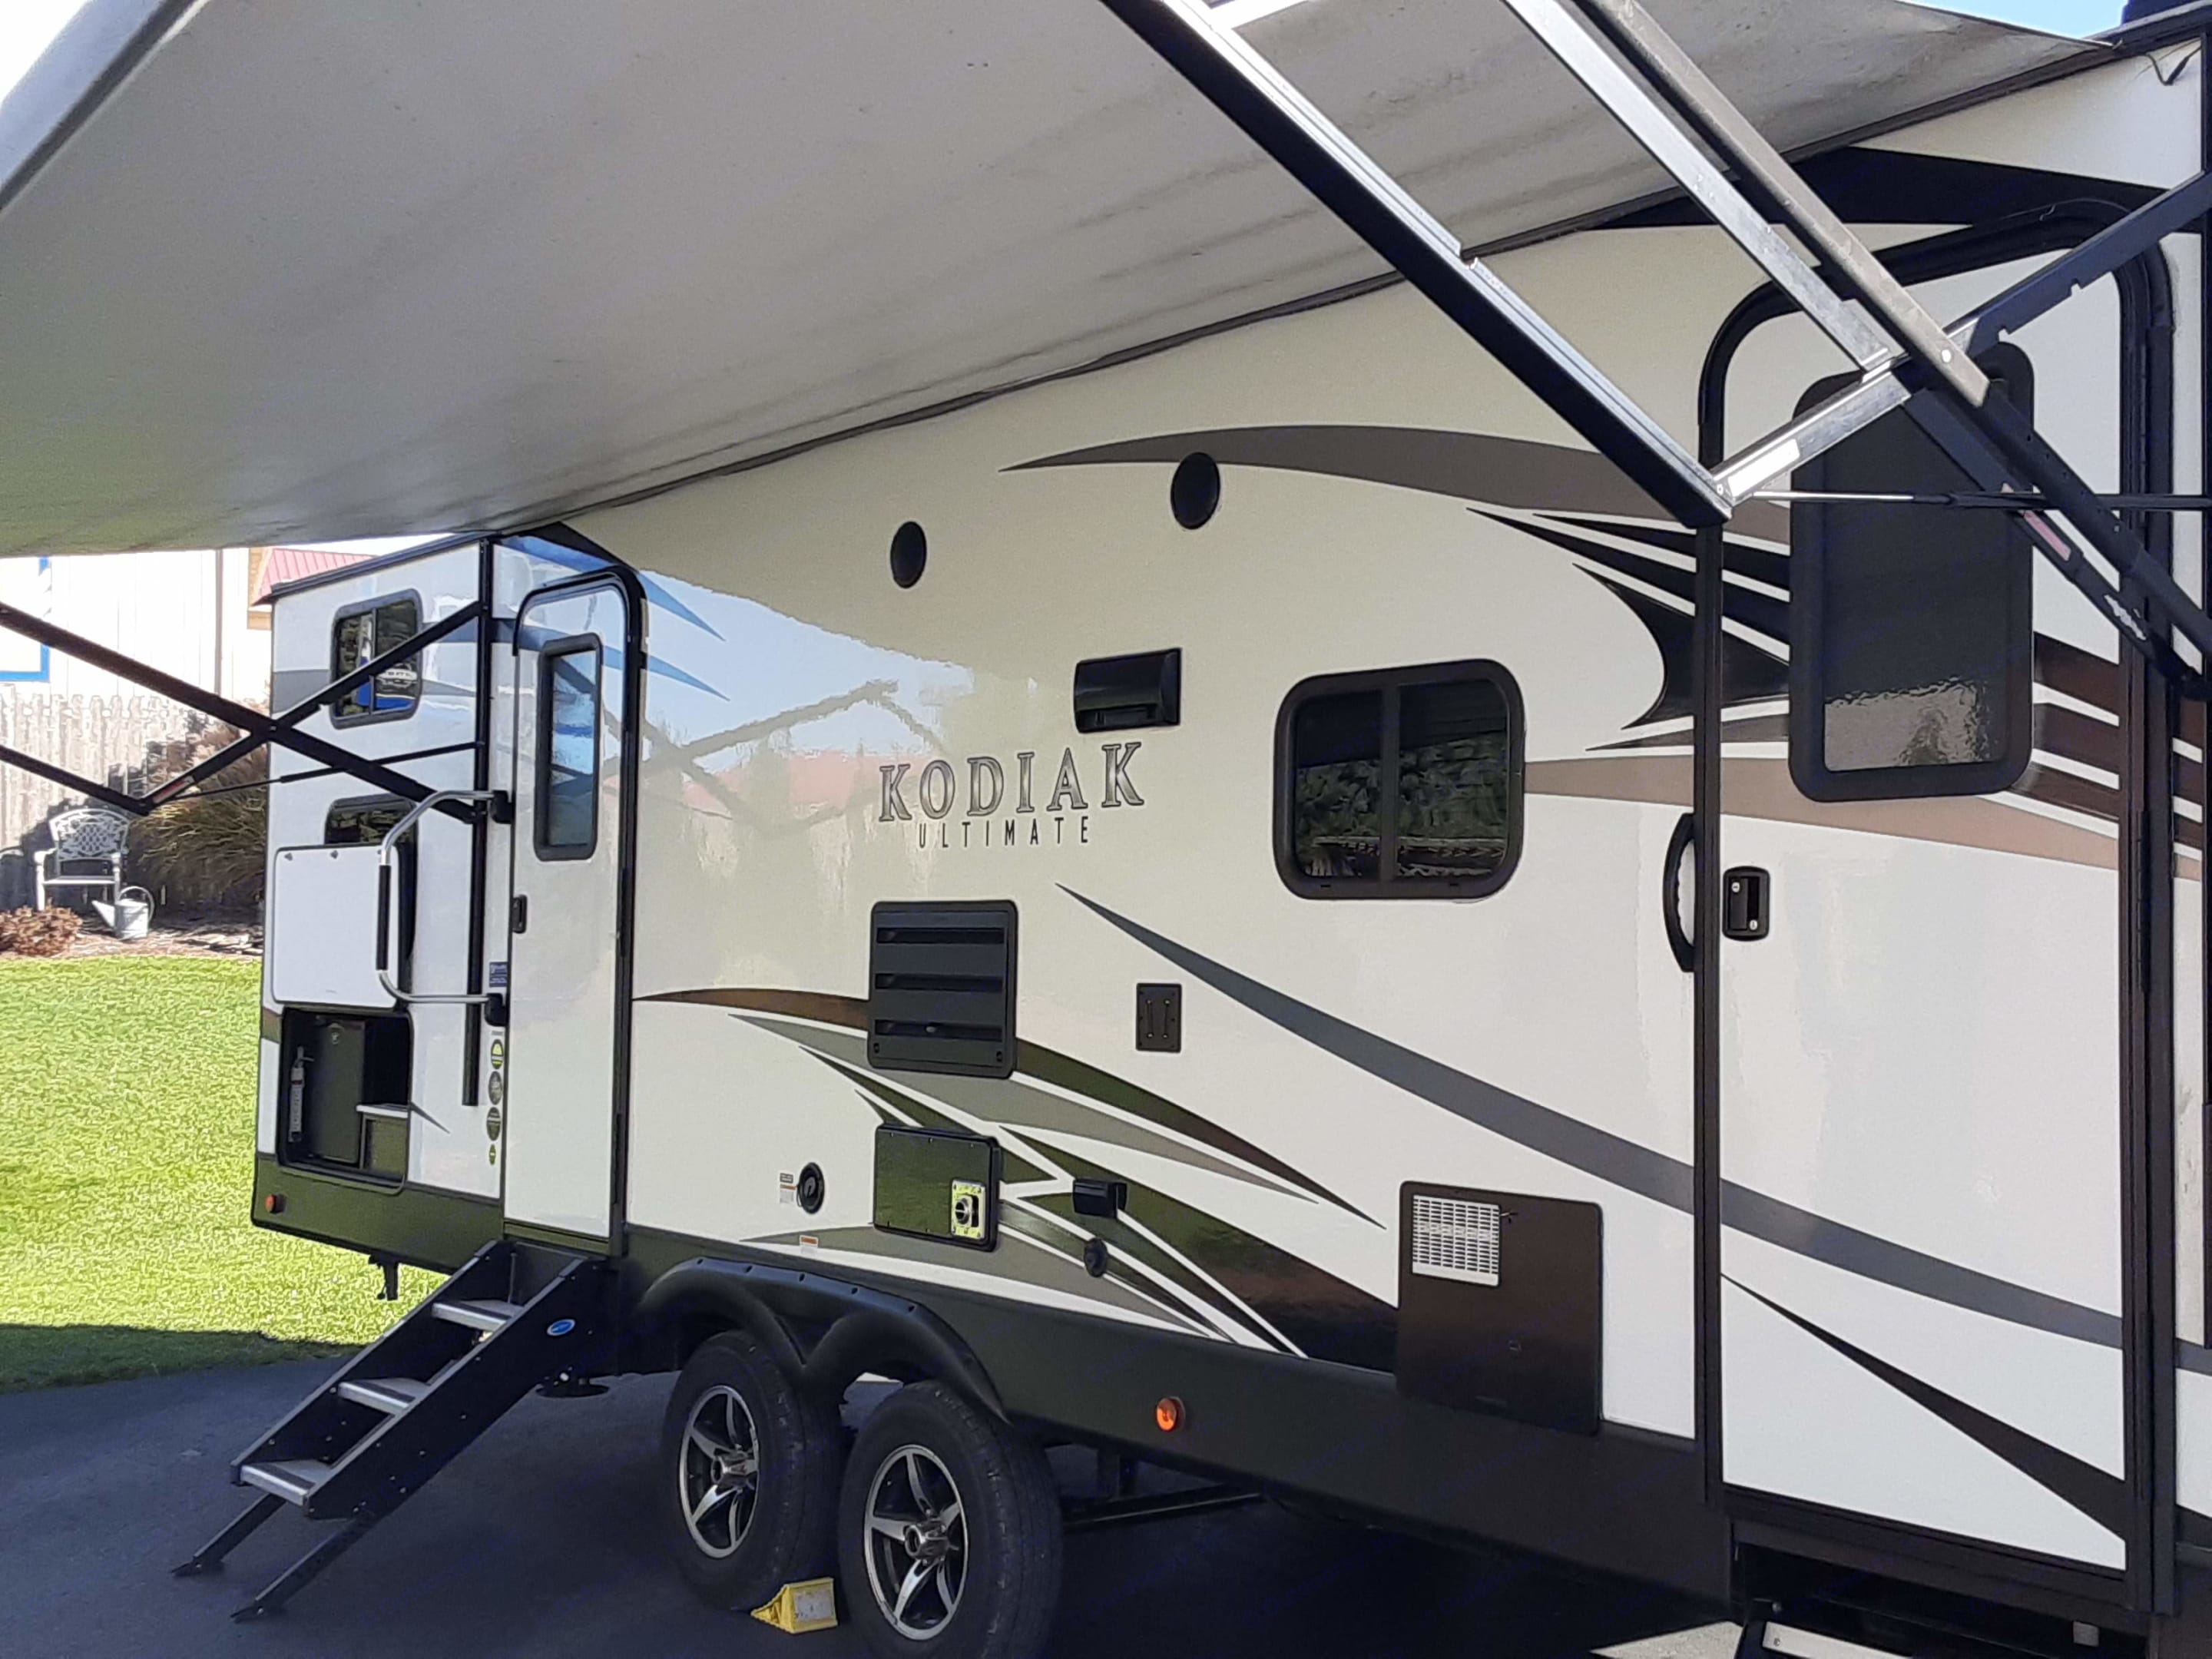 Electric awning with LED lighting. Provides plenty of protection from the sun. Hand-rail for convenient entrance.. Dutchmen Kodiak 2018